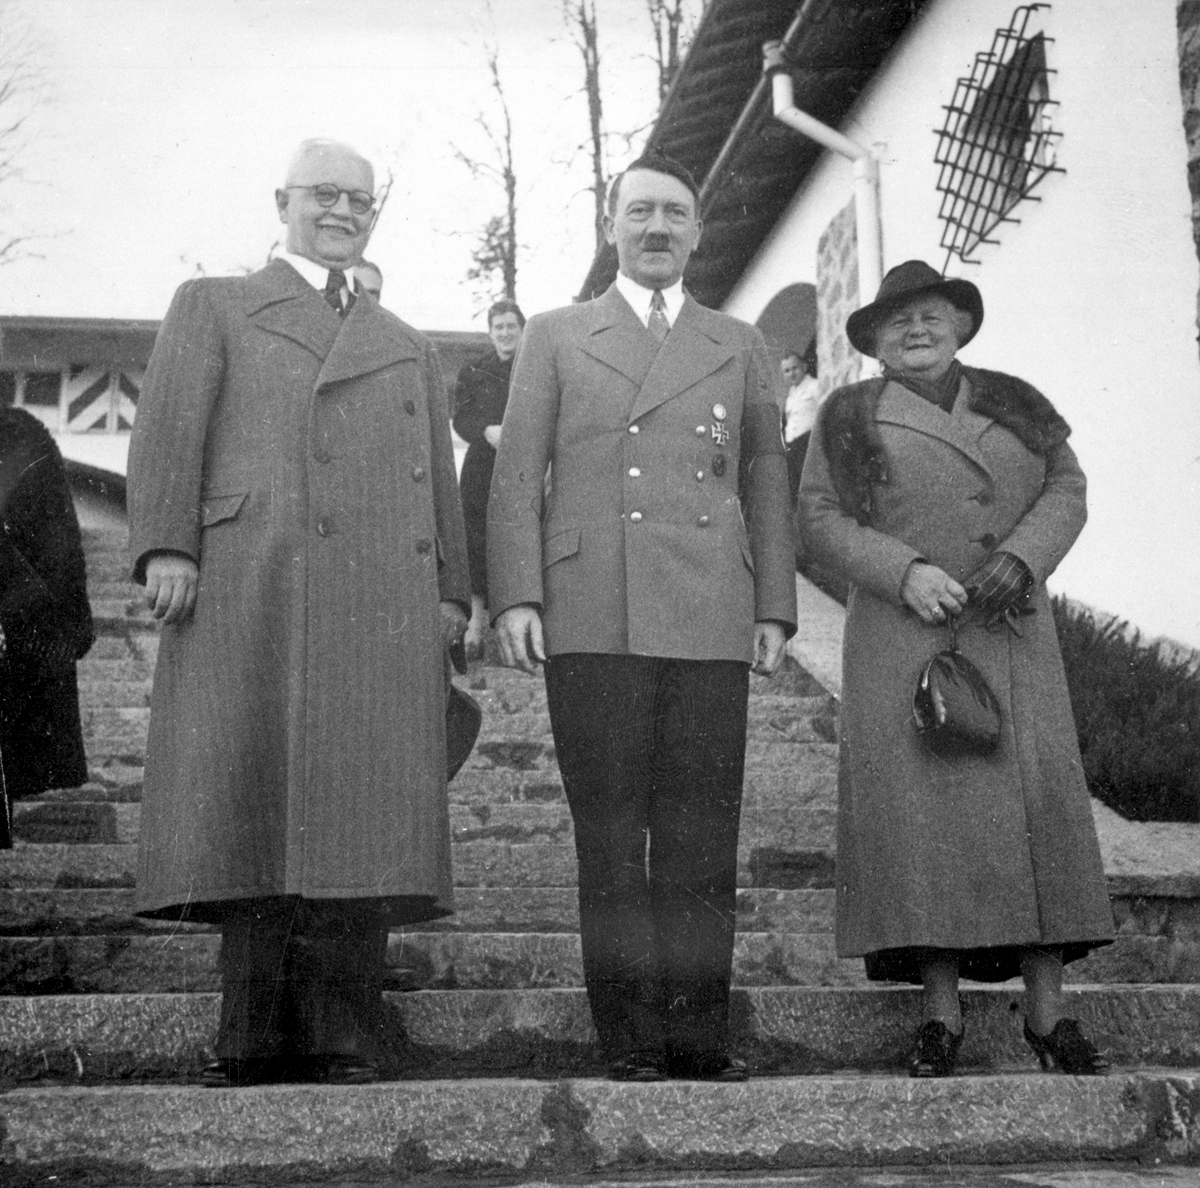 Adolf Hitler welcomes Franz Xaver Schwarz and his wife at the Berghof for his birthday, from Eva Braun's albums